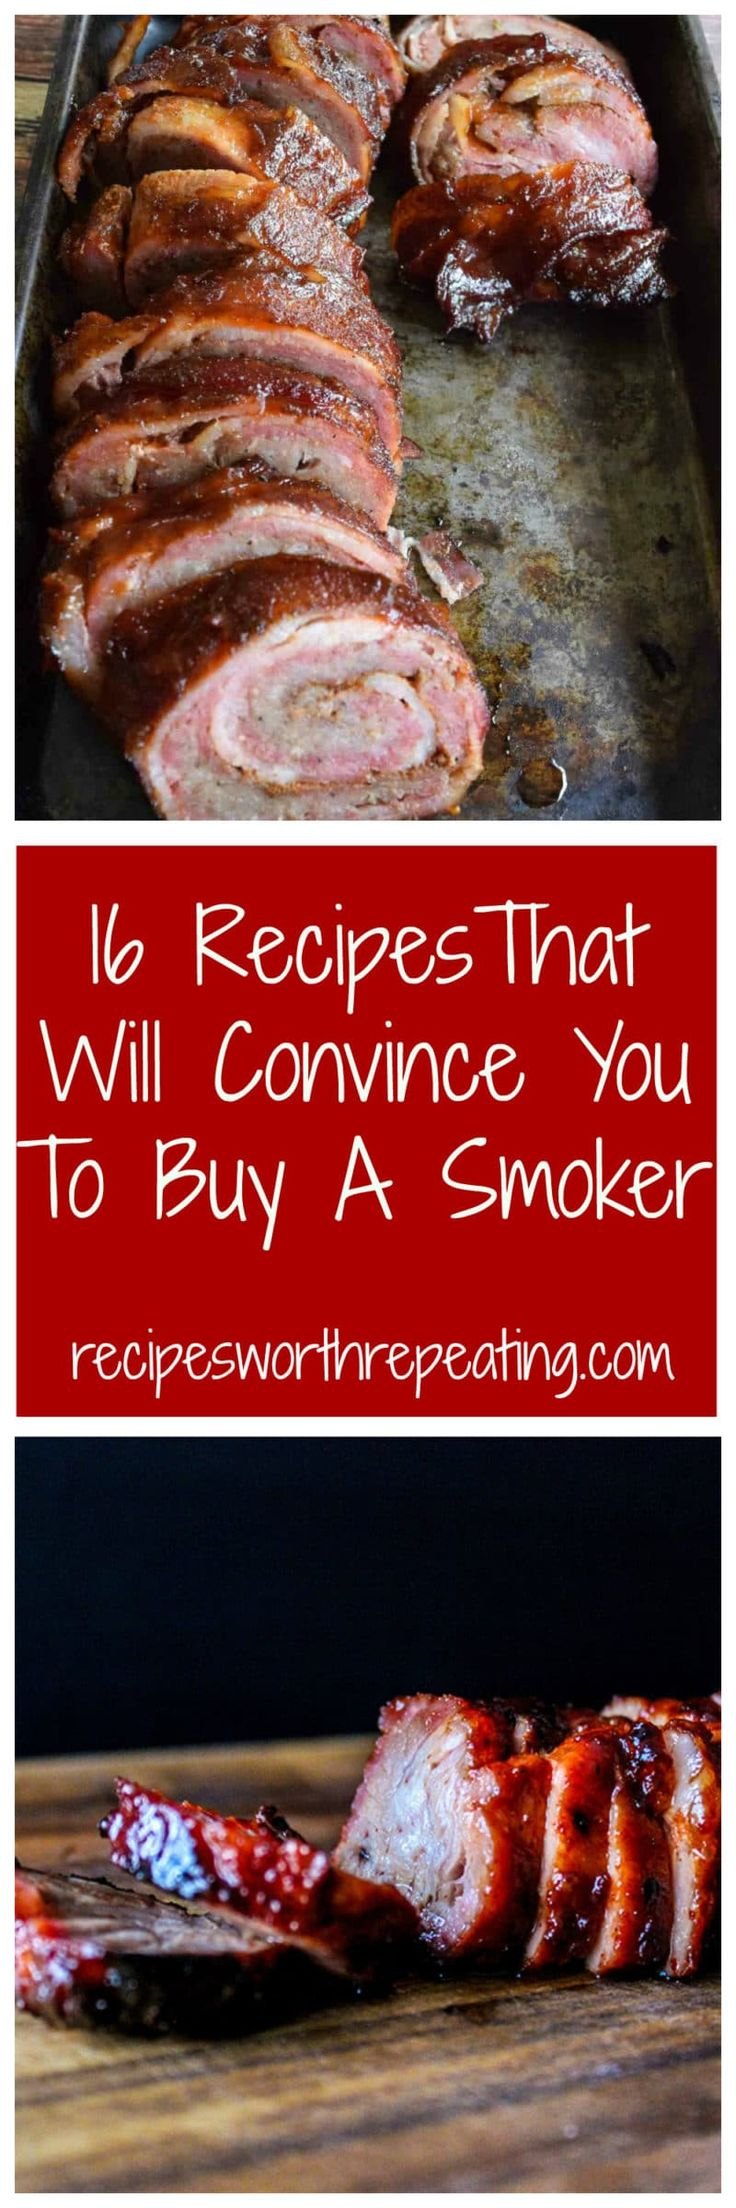 Who says smoking is only for summer time? I've got 16 smoker recipes that I guarantee will make you want to buy a smoker so you can smoke all year round!